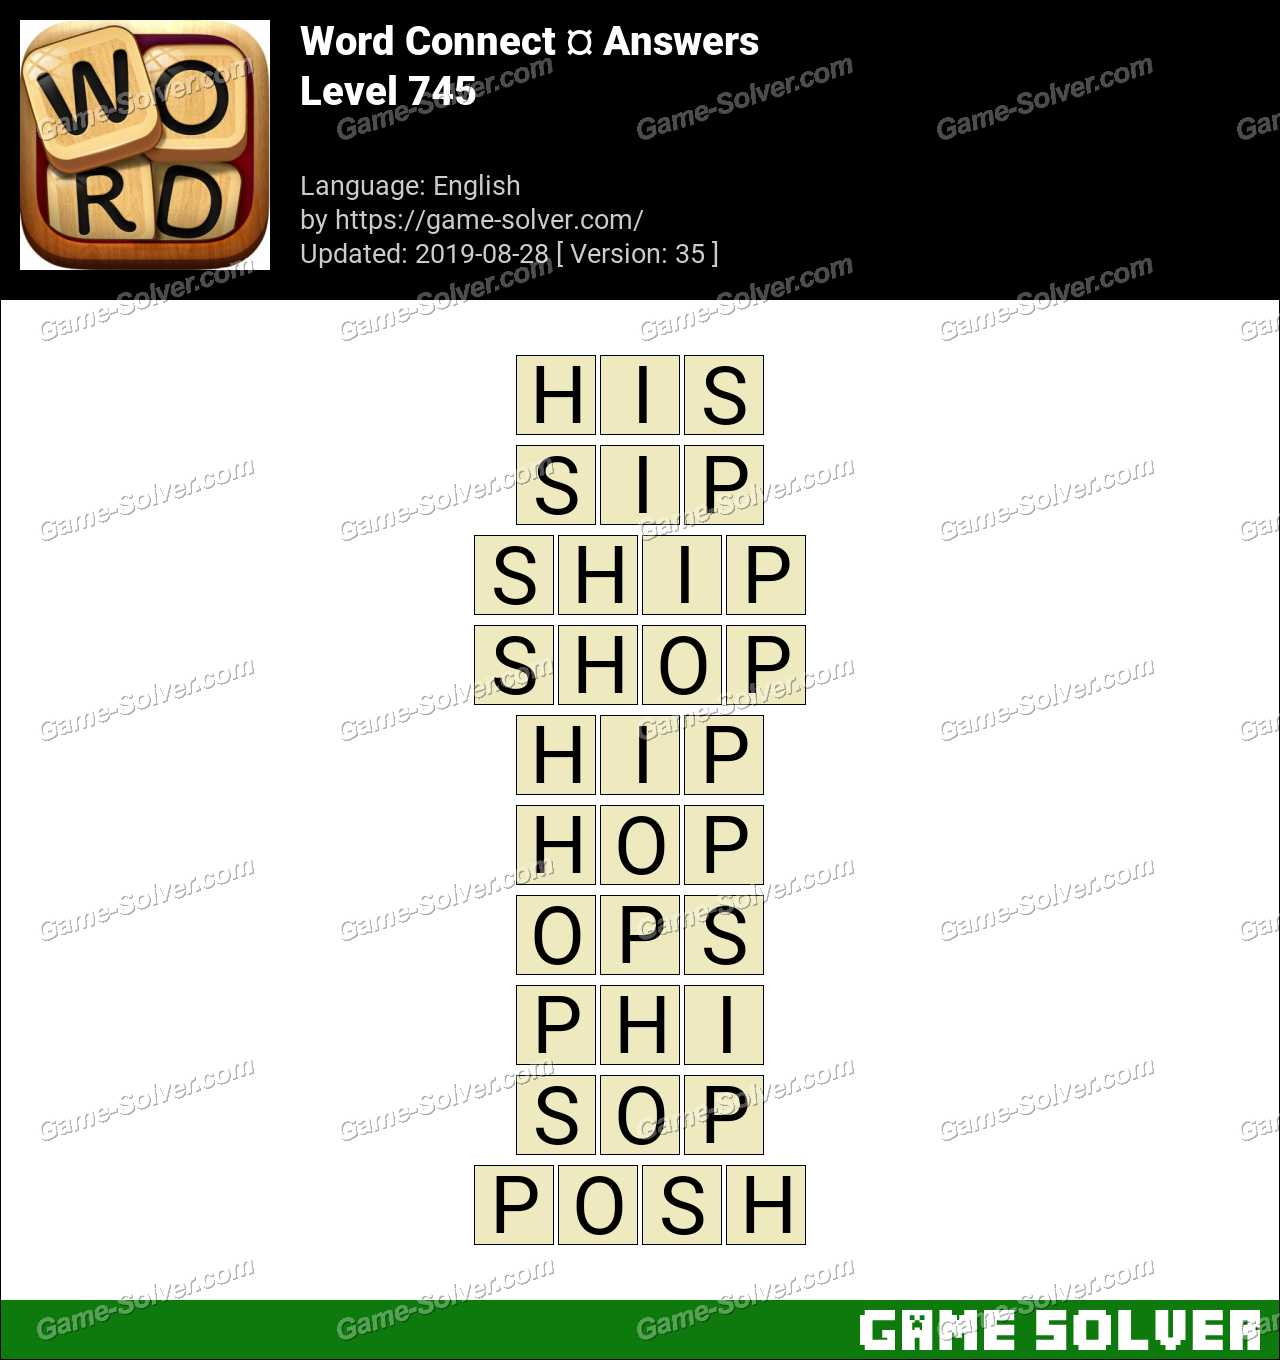 Word Connect Level 745 Answers